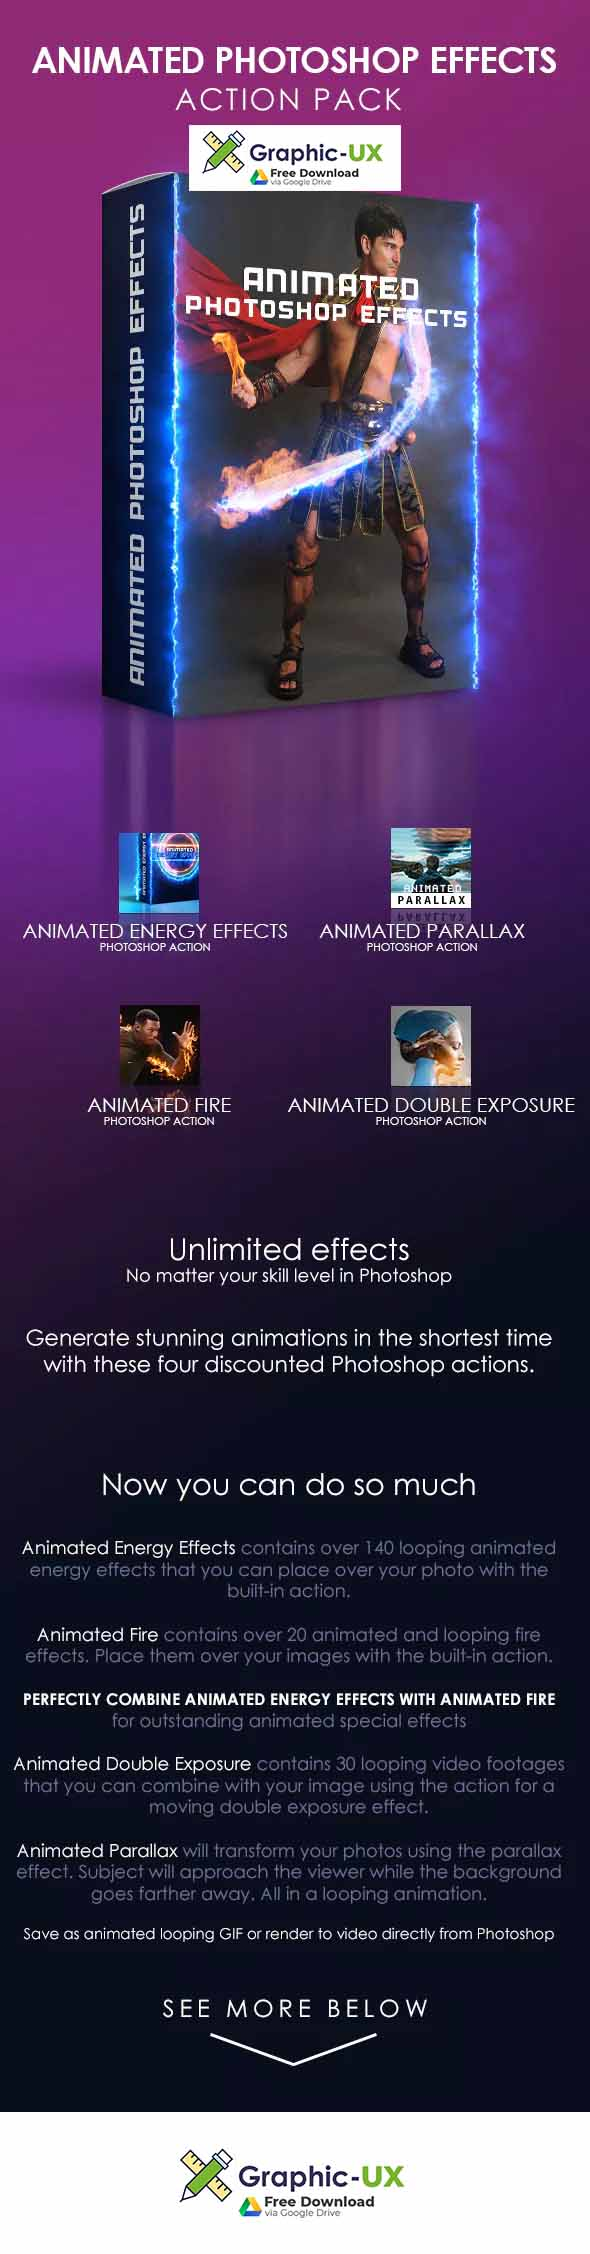 Animated Photoshop Effects Action Pack – GraphicUX